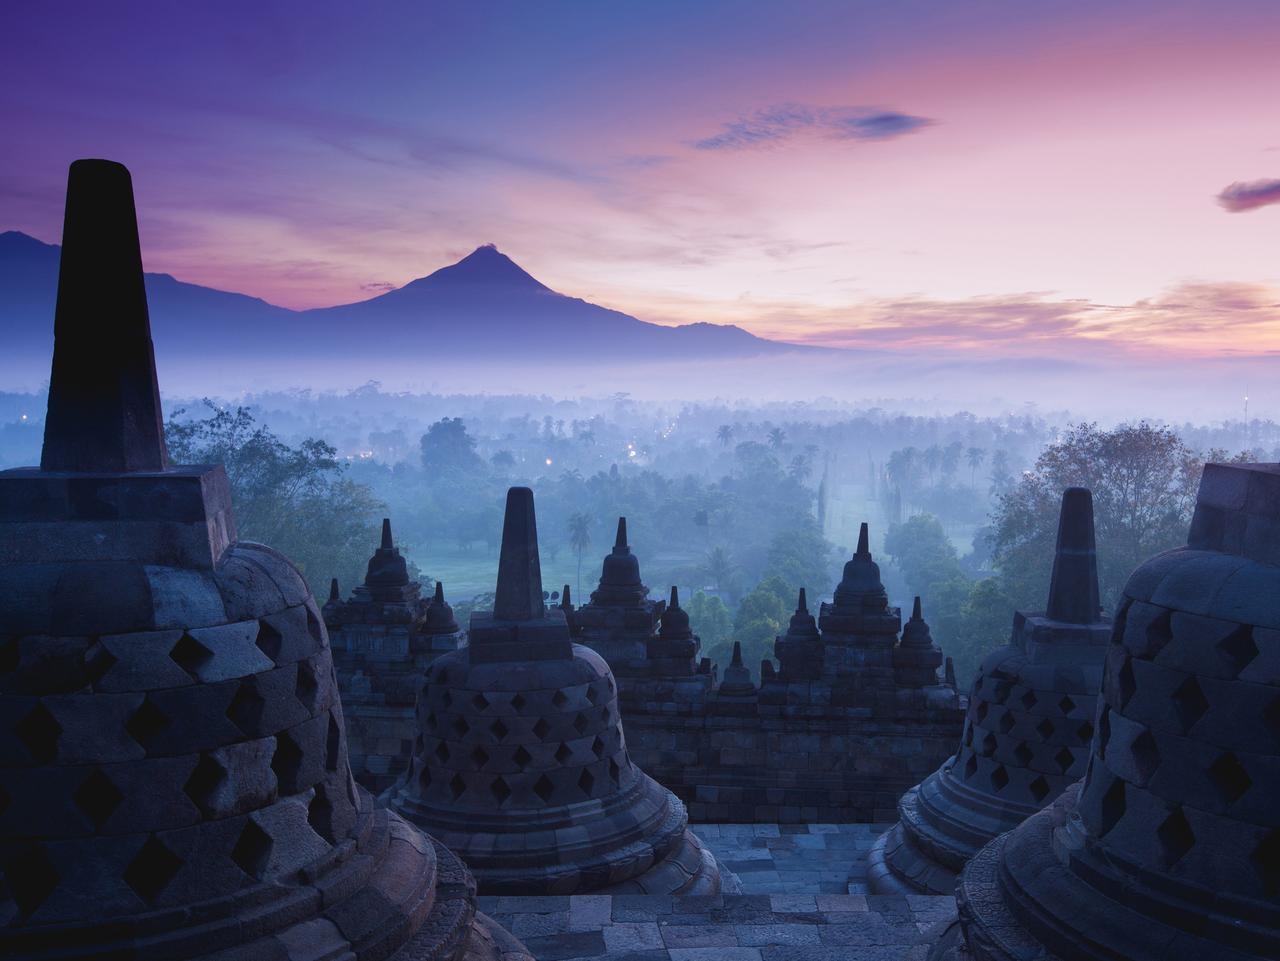 Borobudur Temple is sunrise, Yogyakarta, Java, Indonesia.